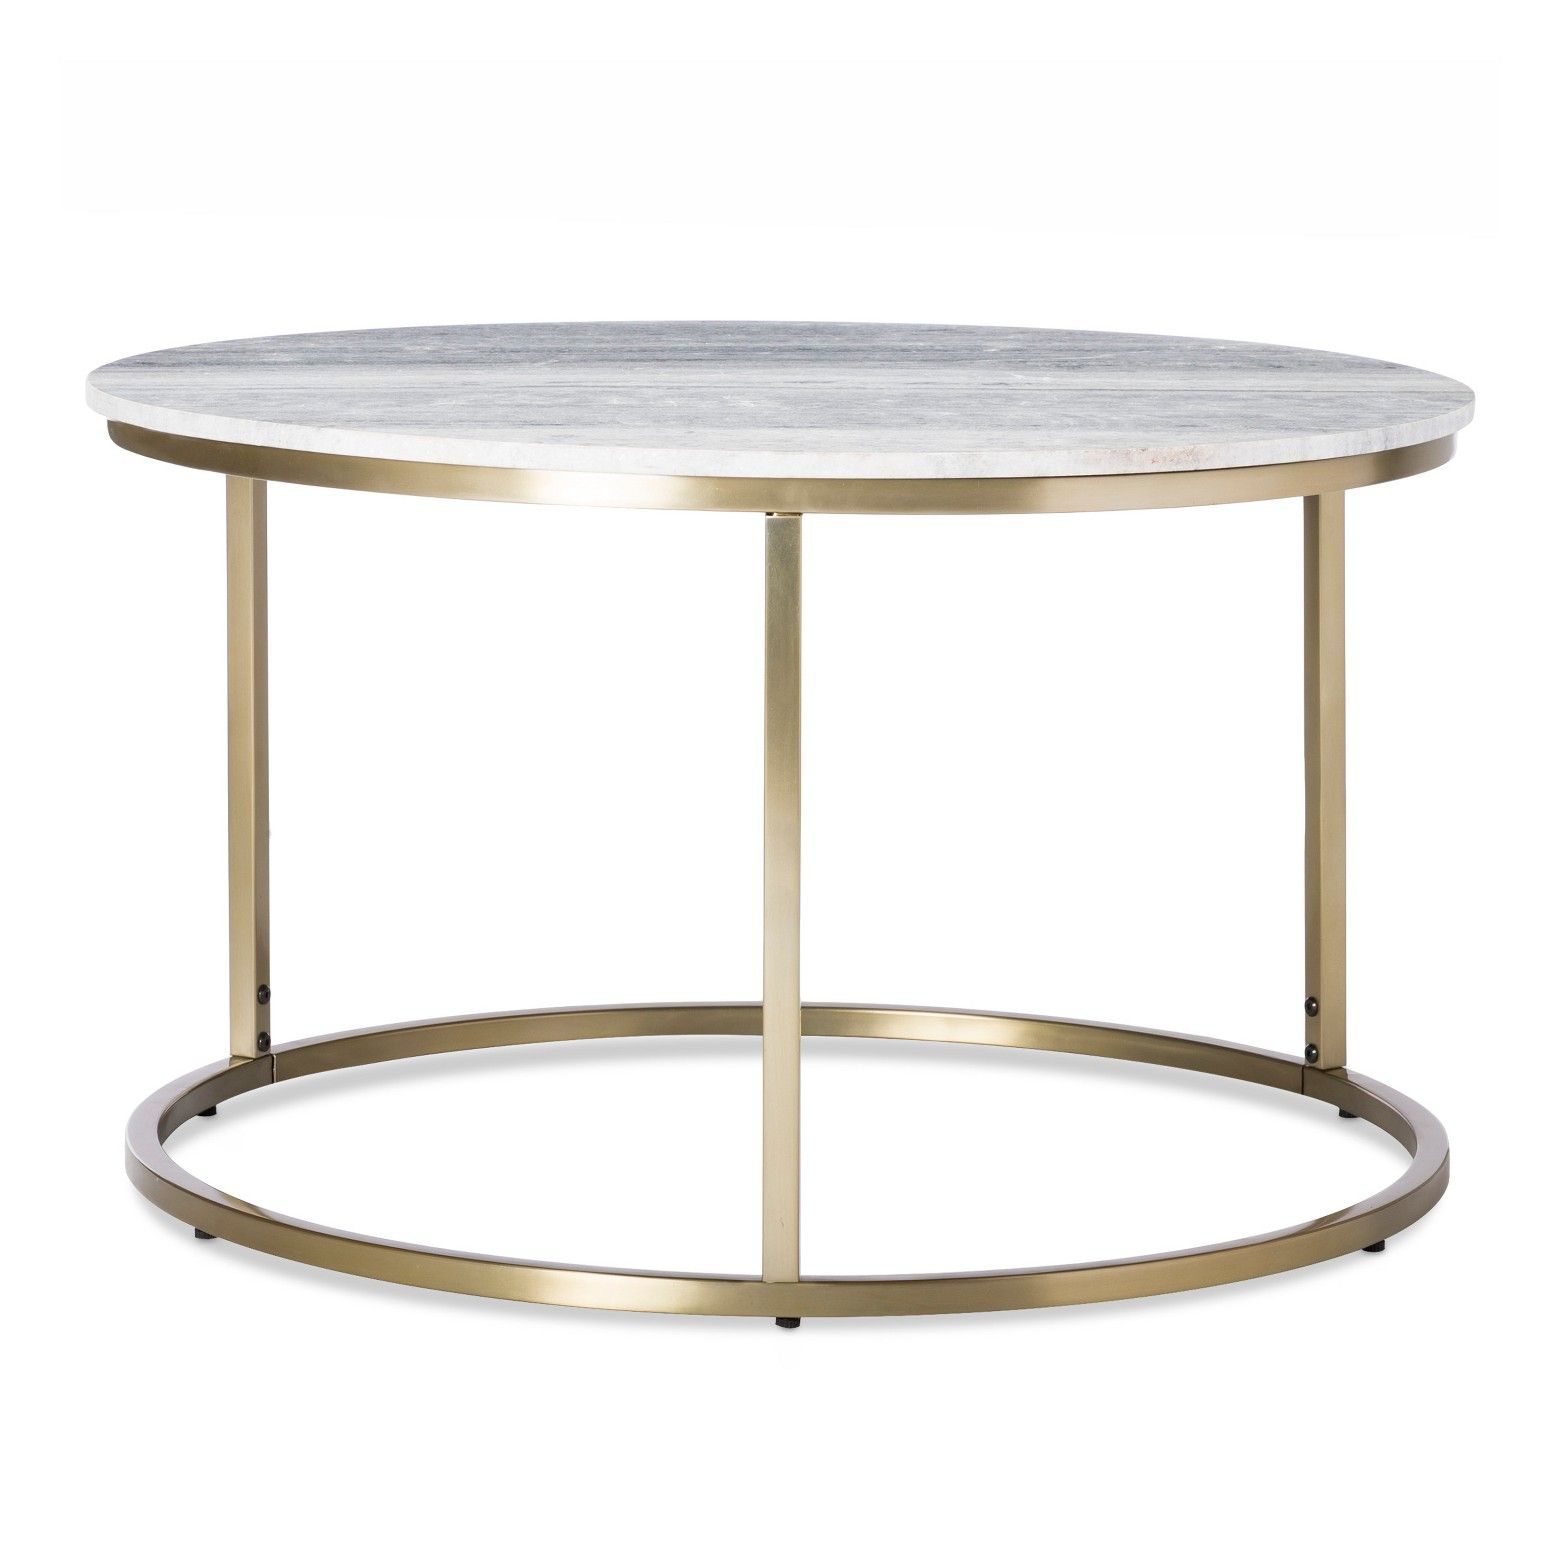 threshold marble top coffee table metal accent with wood pool umbrella stand outdoor patio furniture toronto glass cube side ships lantern pendant light old lamp tables chair set